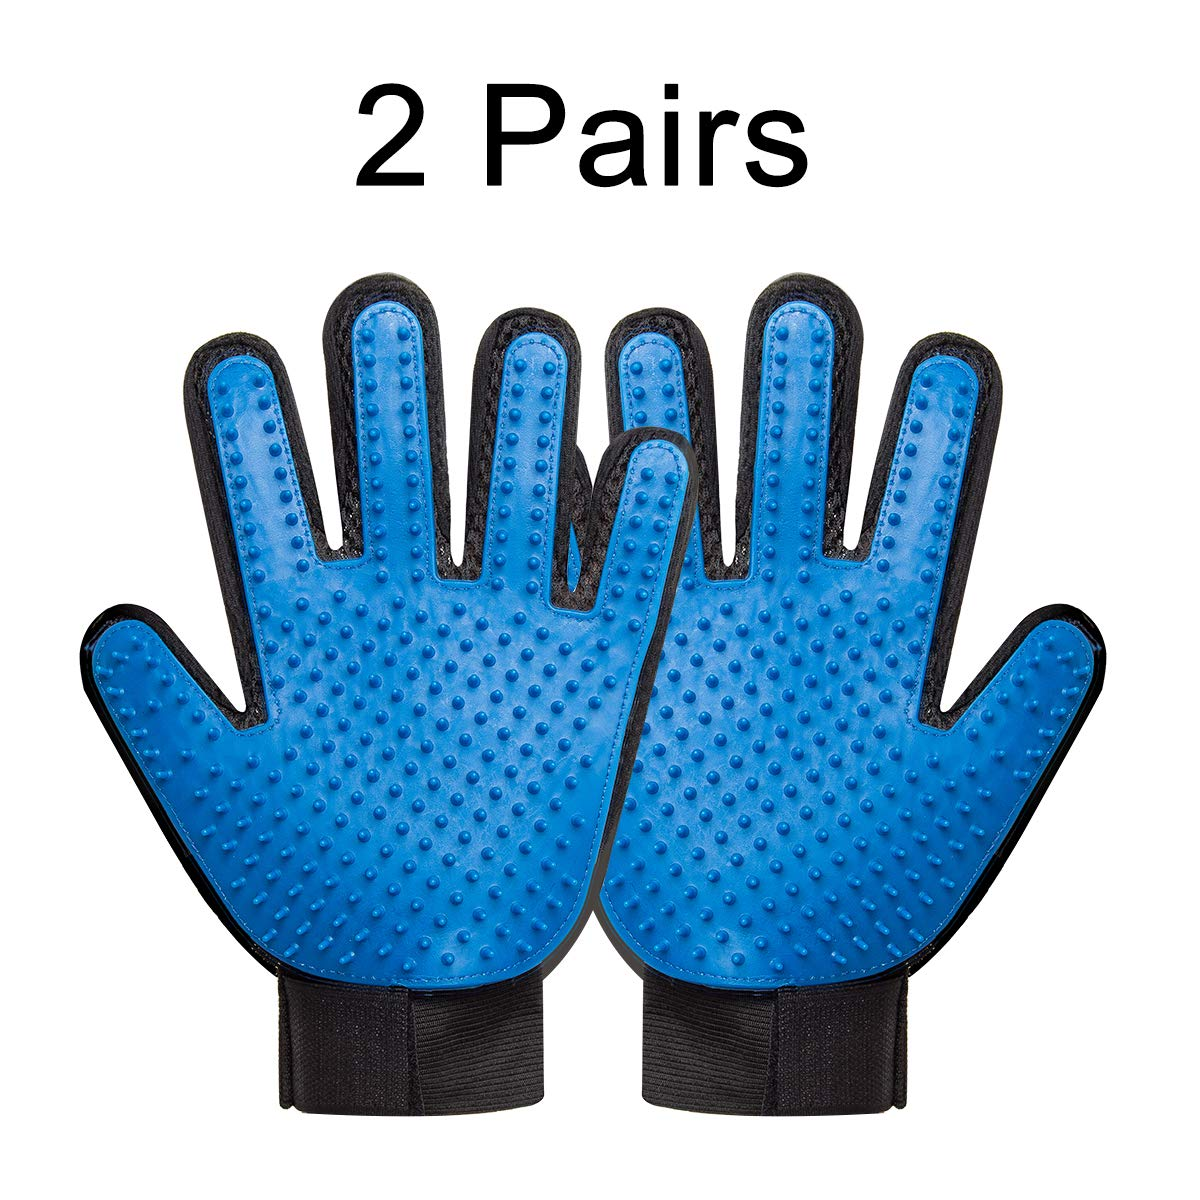 DIJIAHUA Pet Grooming Glove - Pet Hair Remover Mitt - Gentle Deshedding Bathing Massage Gloves for Cats and Dogs with Long and Short Fur - 2 Pairs